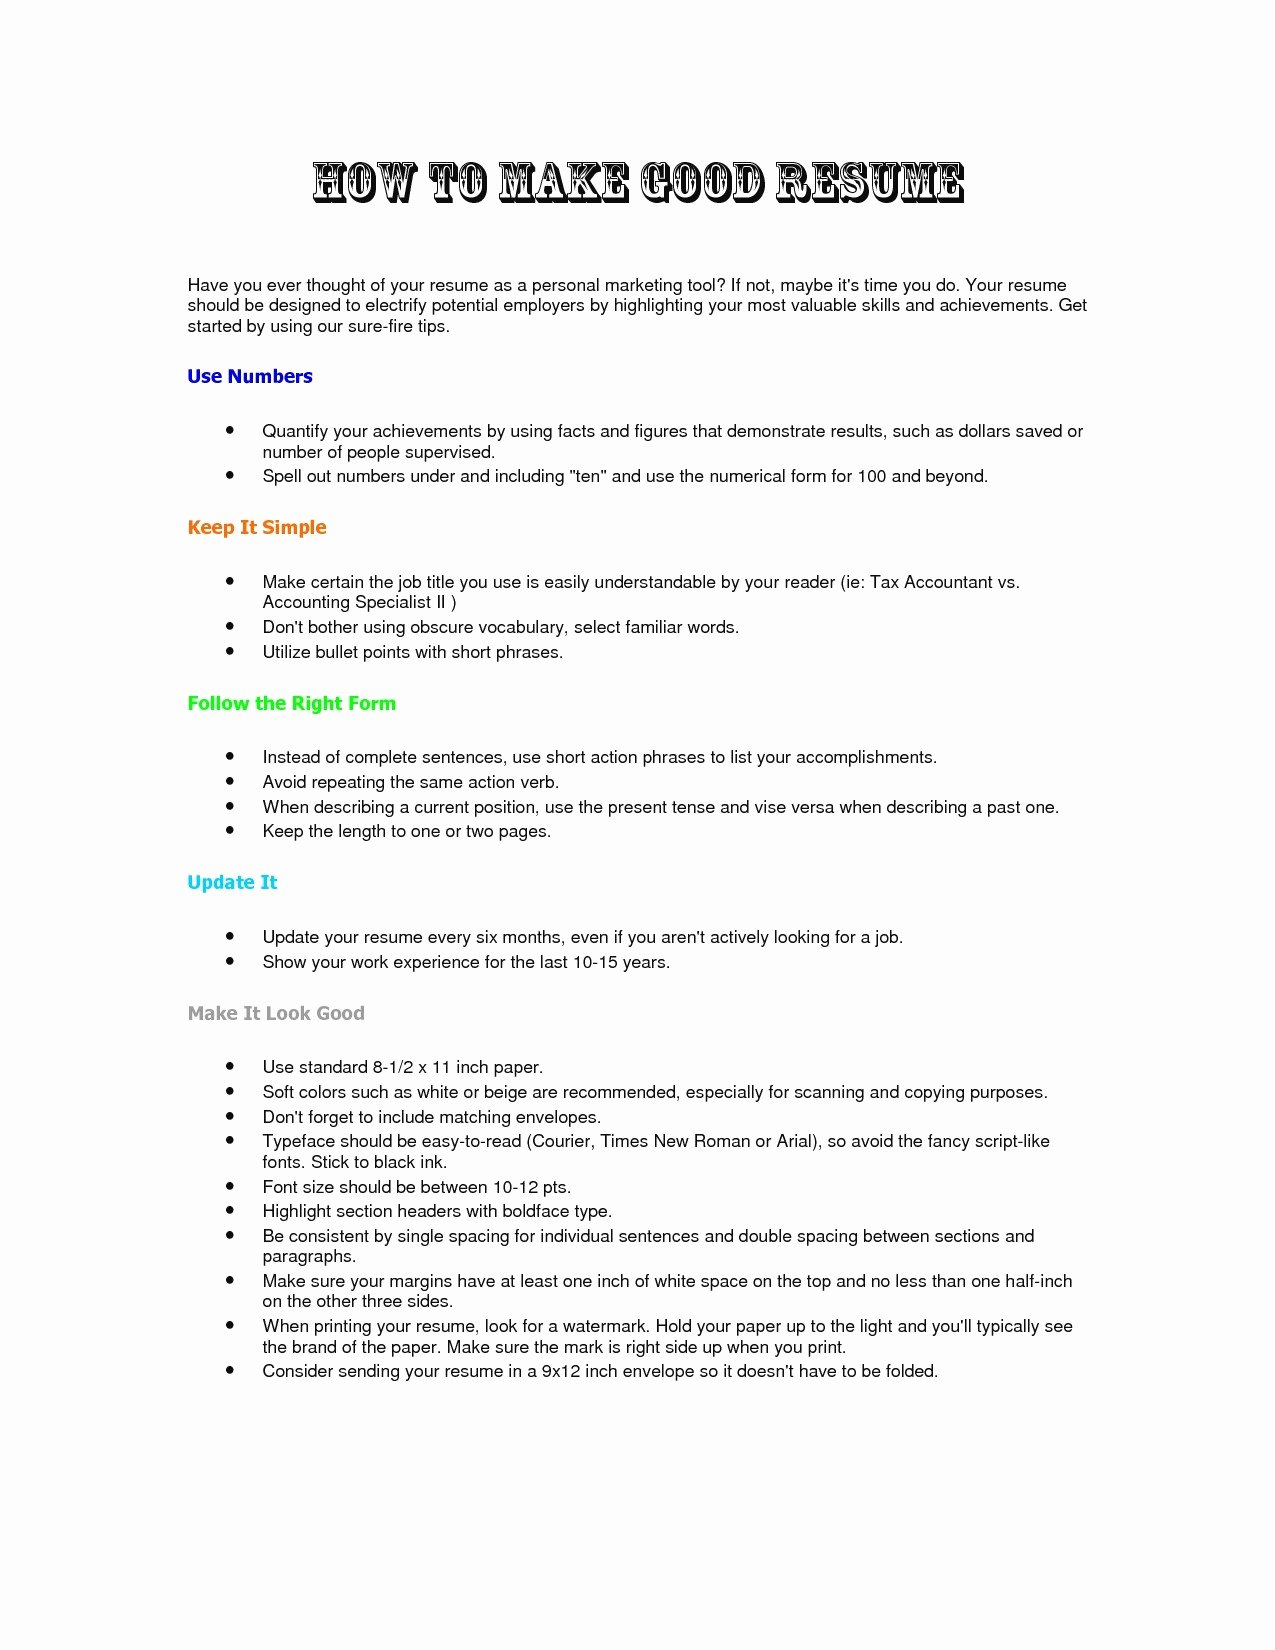 Step by Step Resumes How to Make A Resume Step by Step